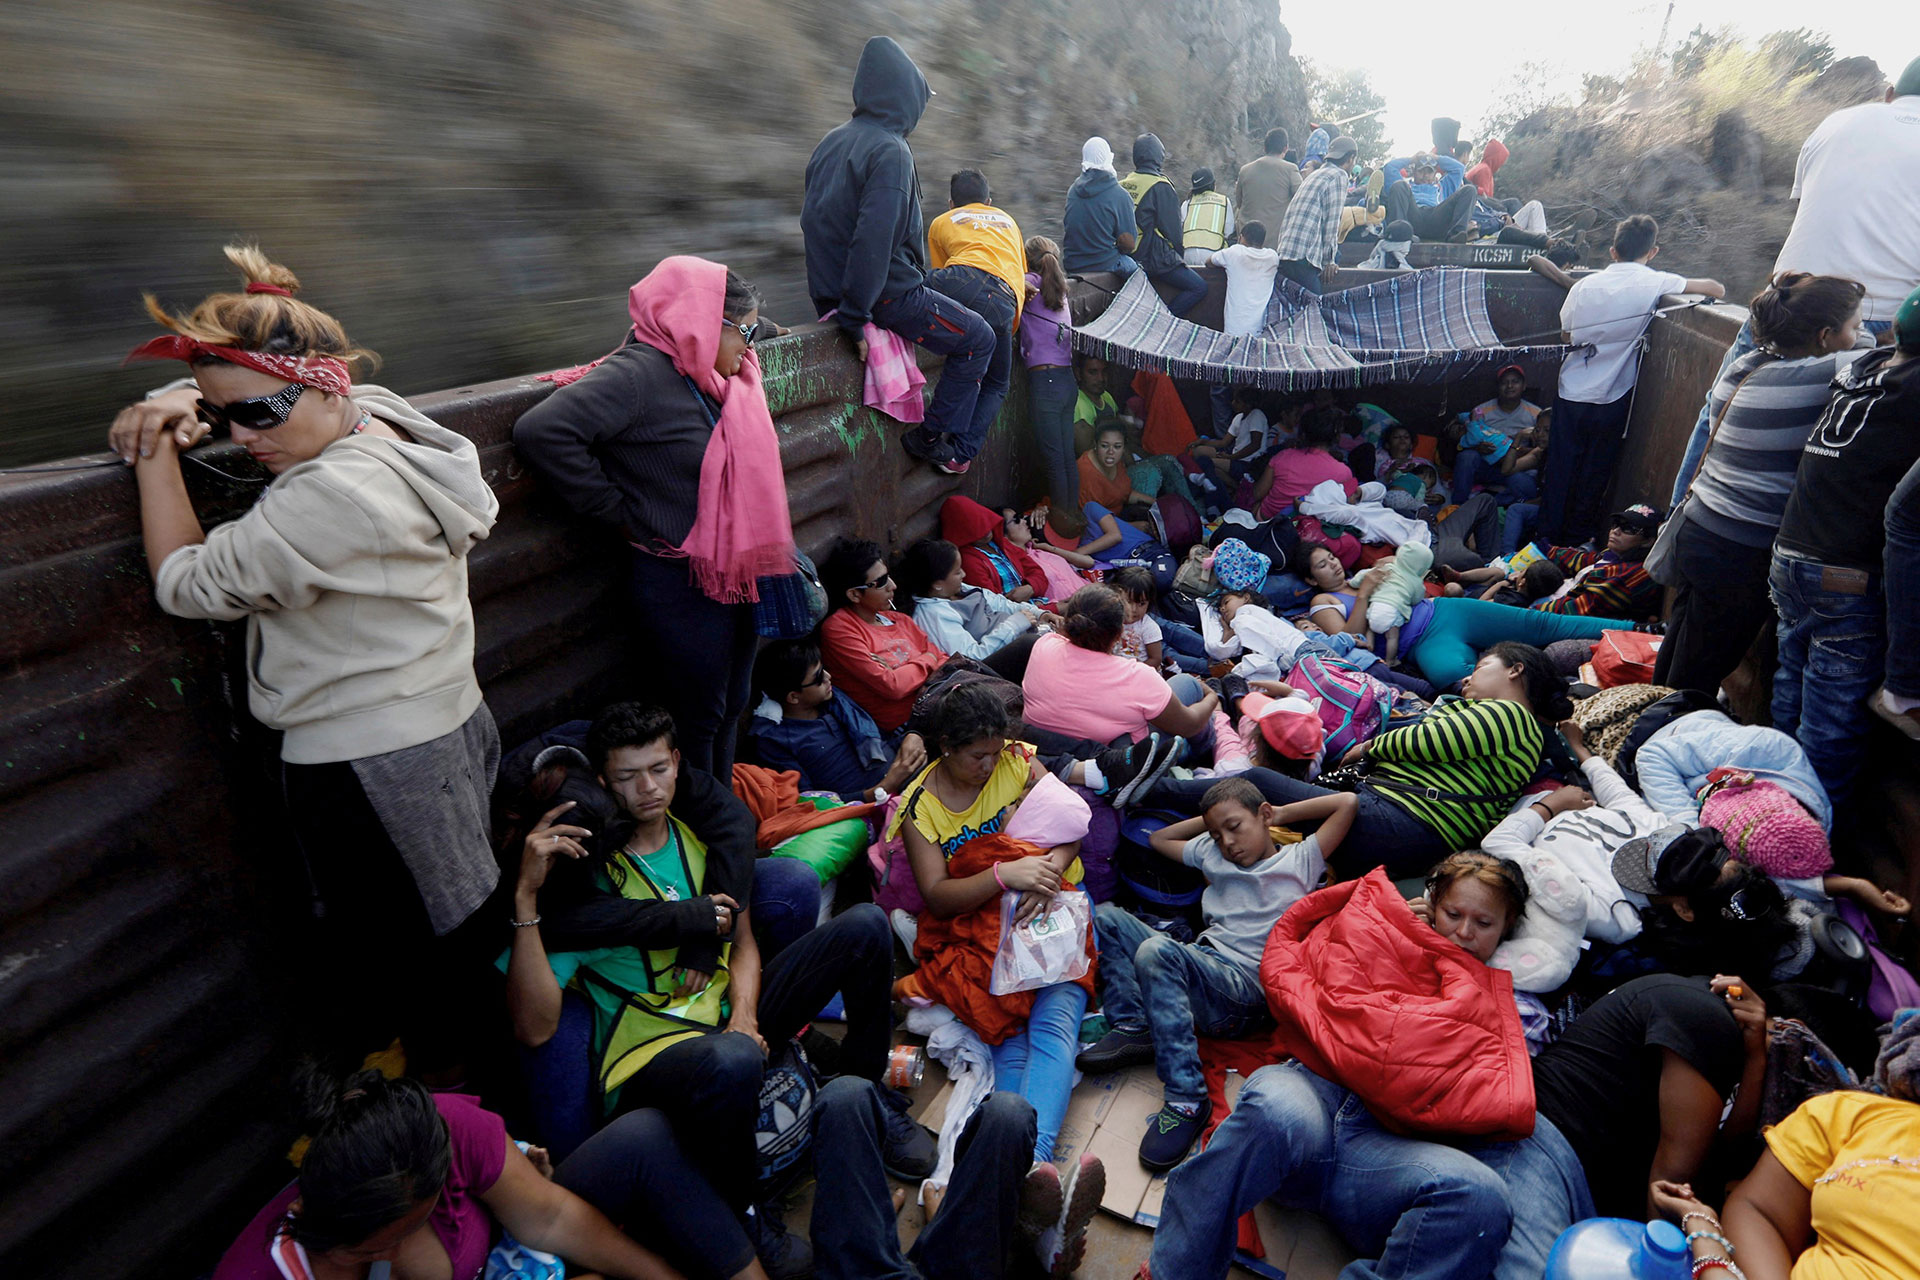 Central American migrants in the open wagon of a freight train